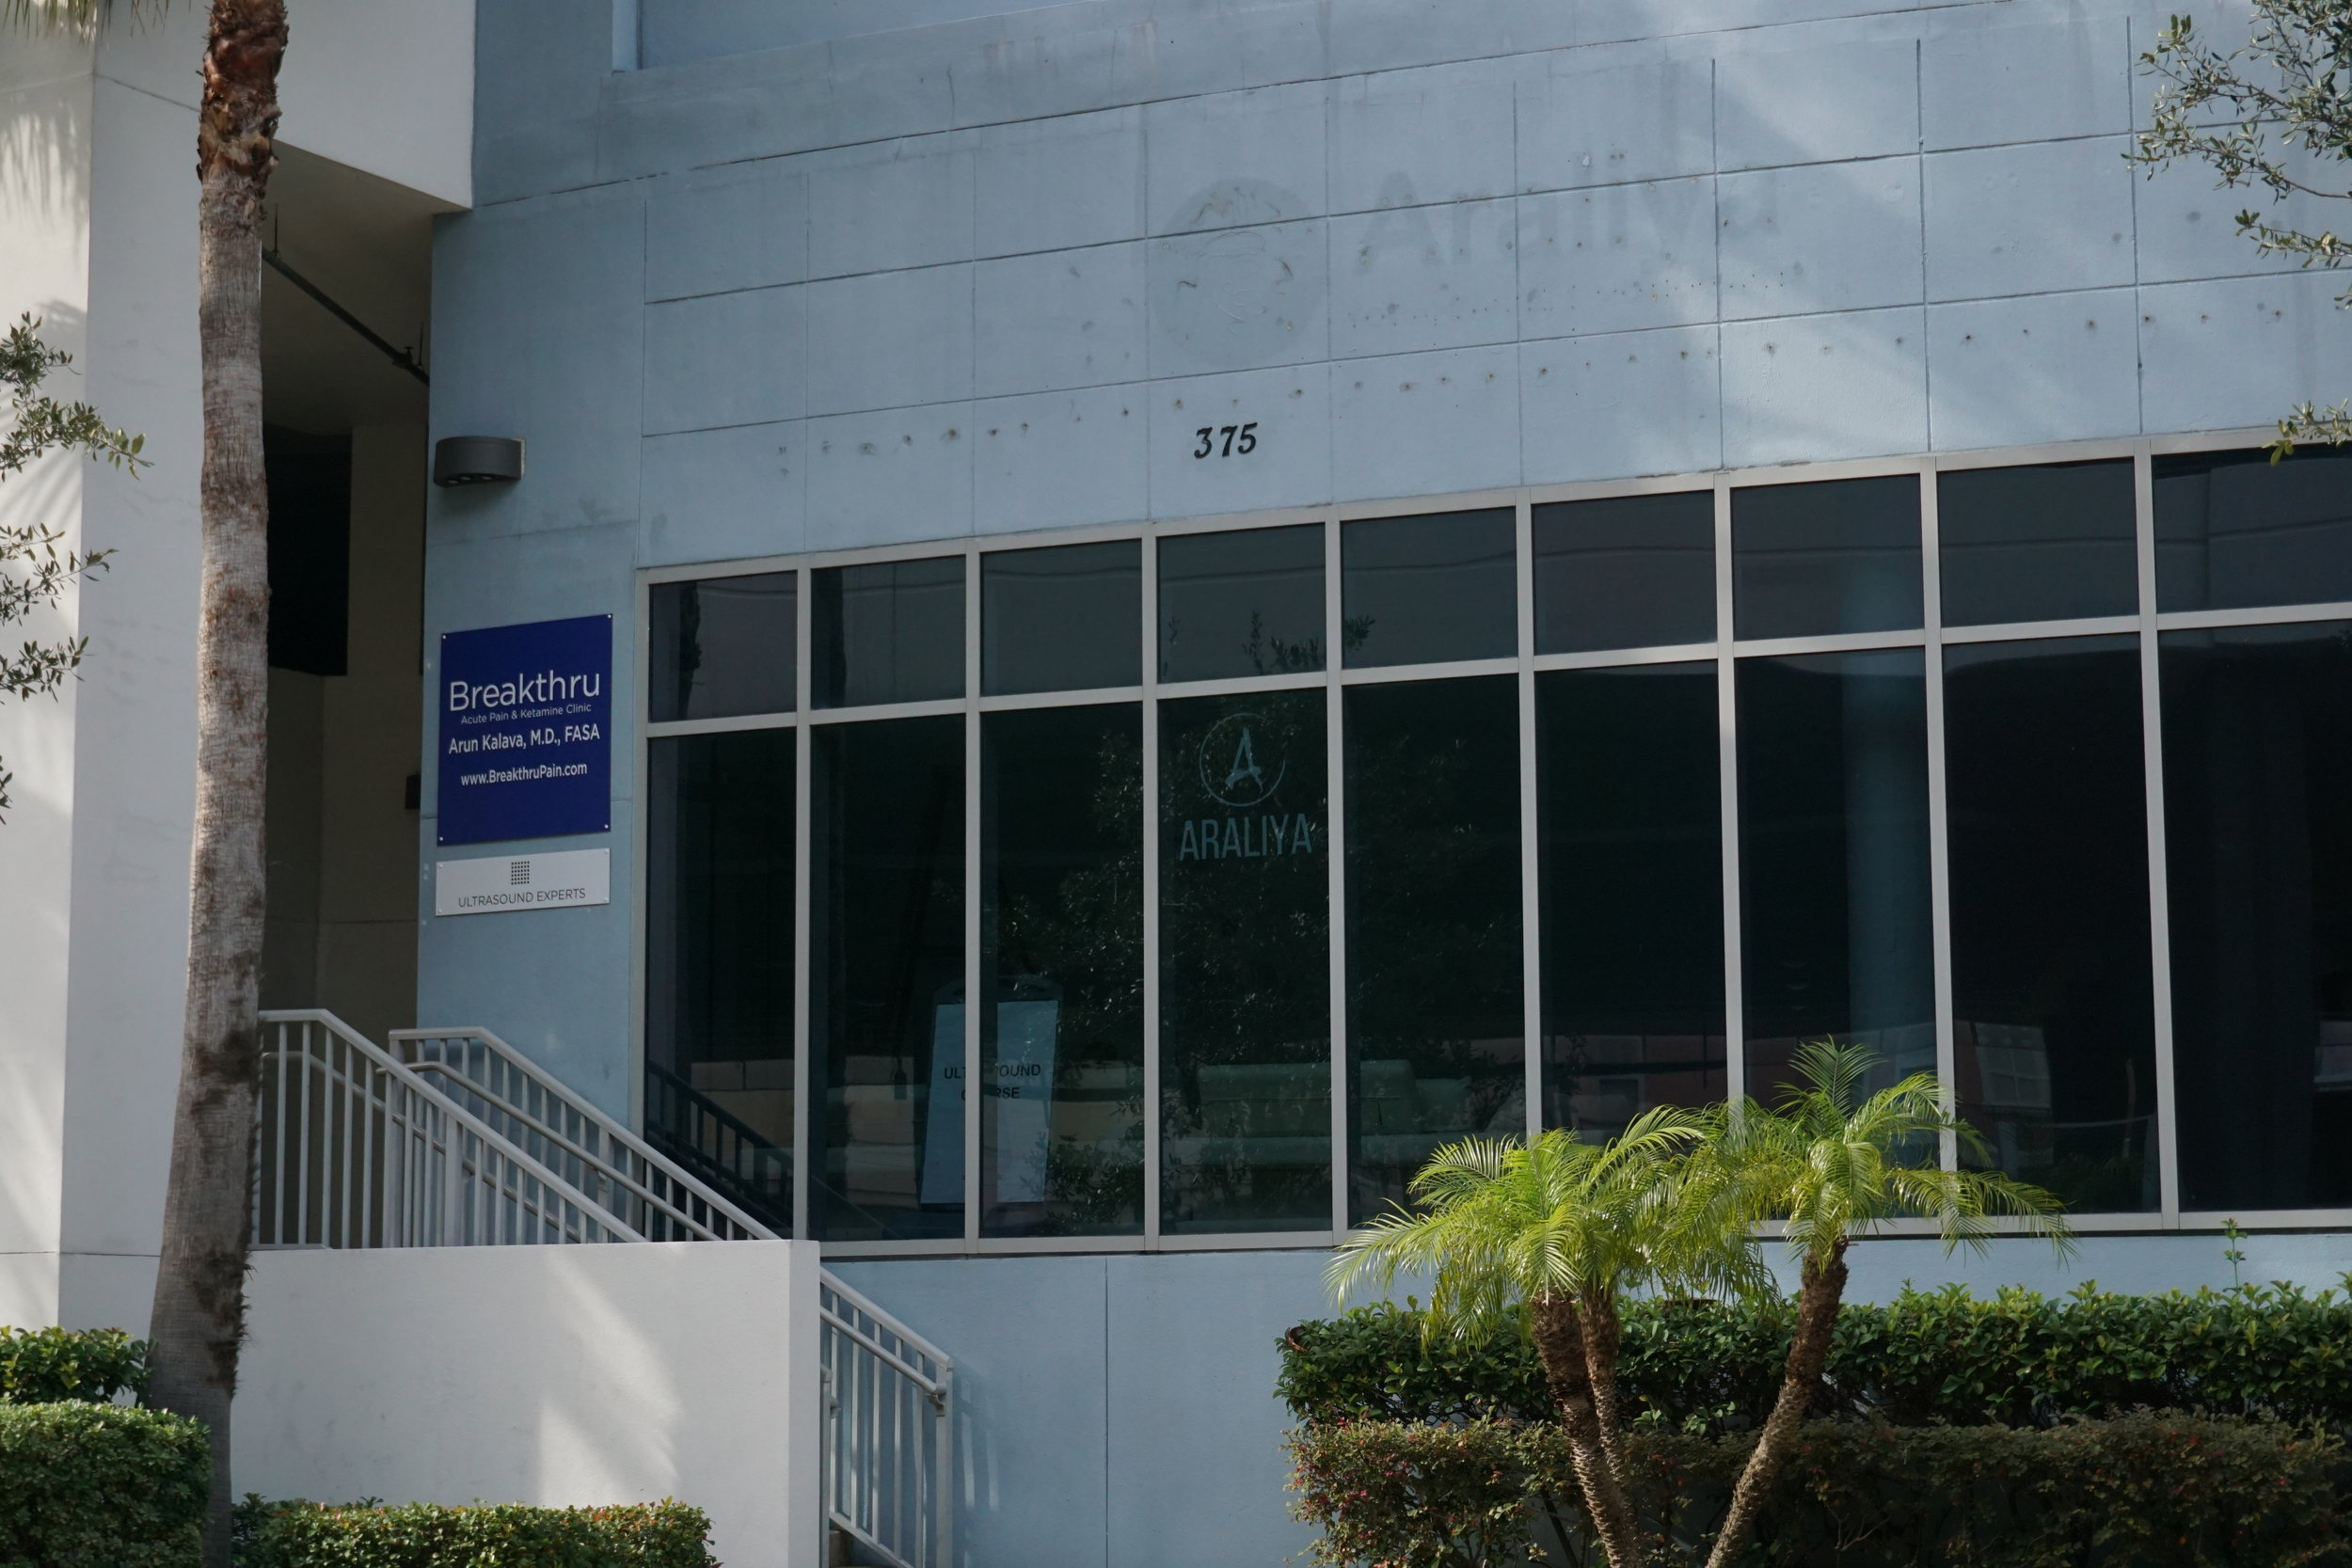 Headquarters - 375 S 12th Street, Tampa, FL, 33602Phone: 813-533-6259 (on-site)